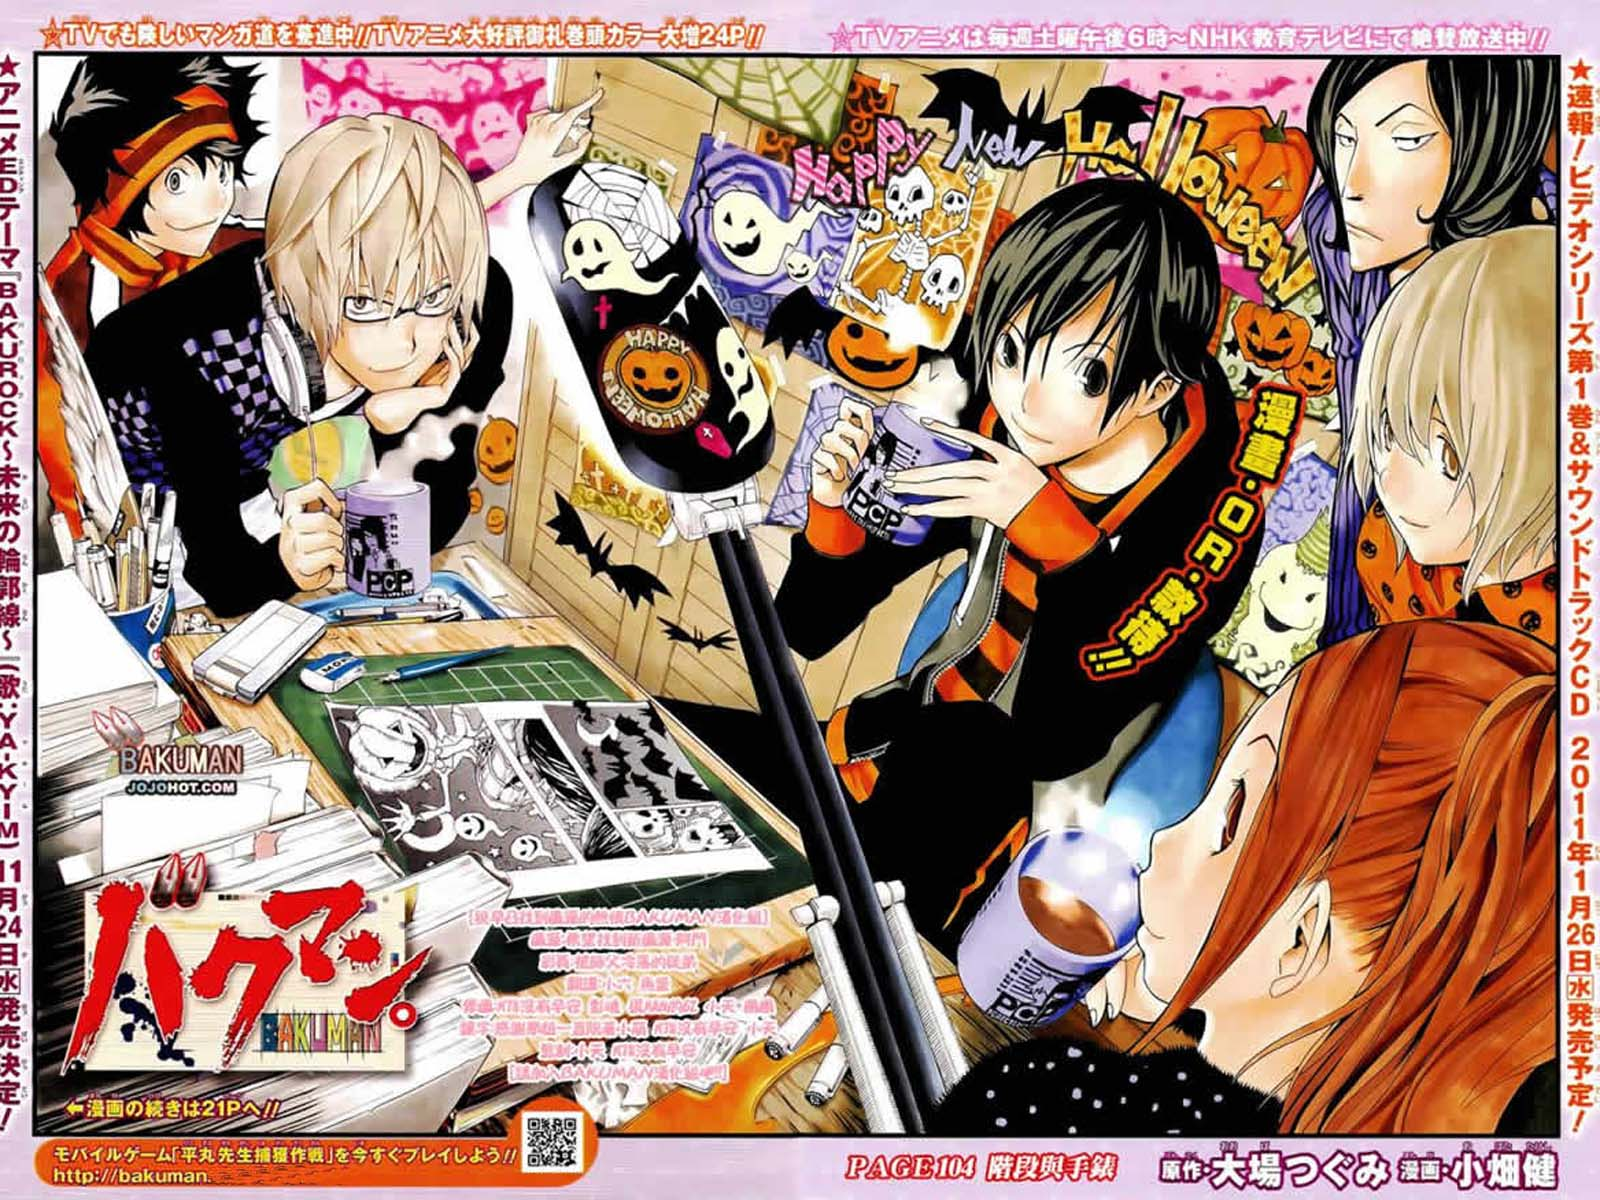 Bakuman Wallpapers Wallpapers,Bakuman Wallpapers & Pictures Free